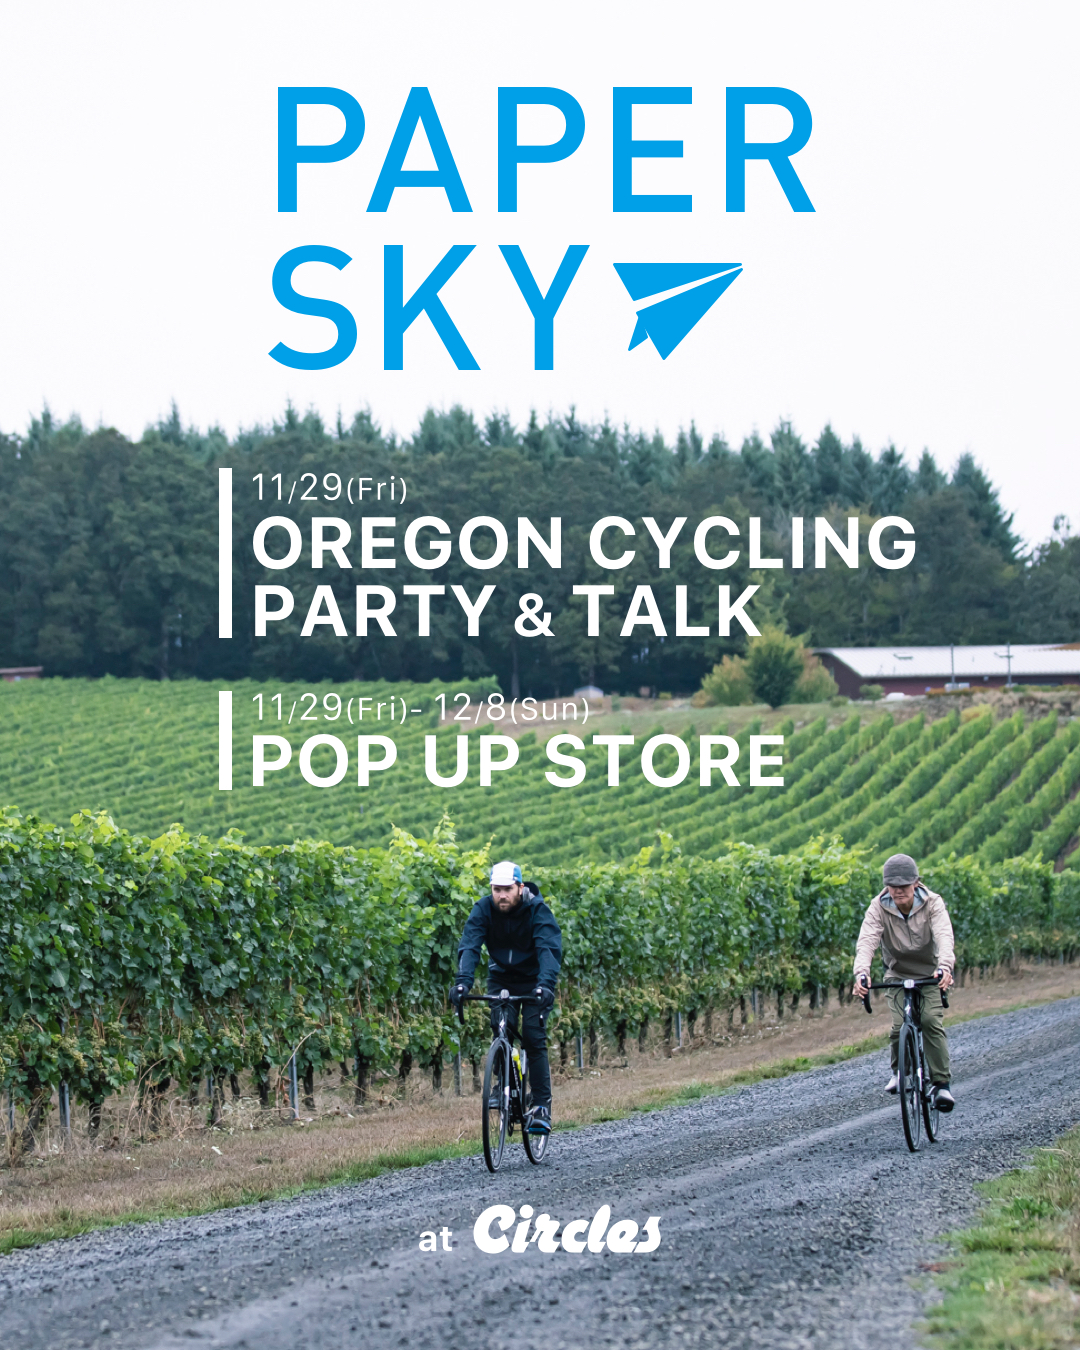 PAPERSKY / Oregon Cycling Party & Talk